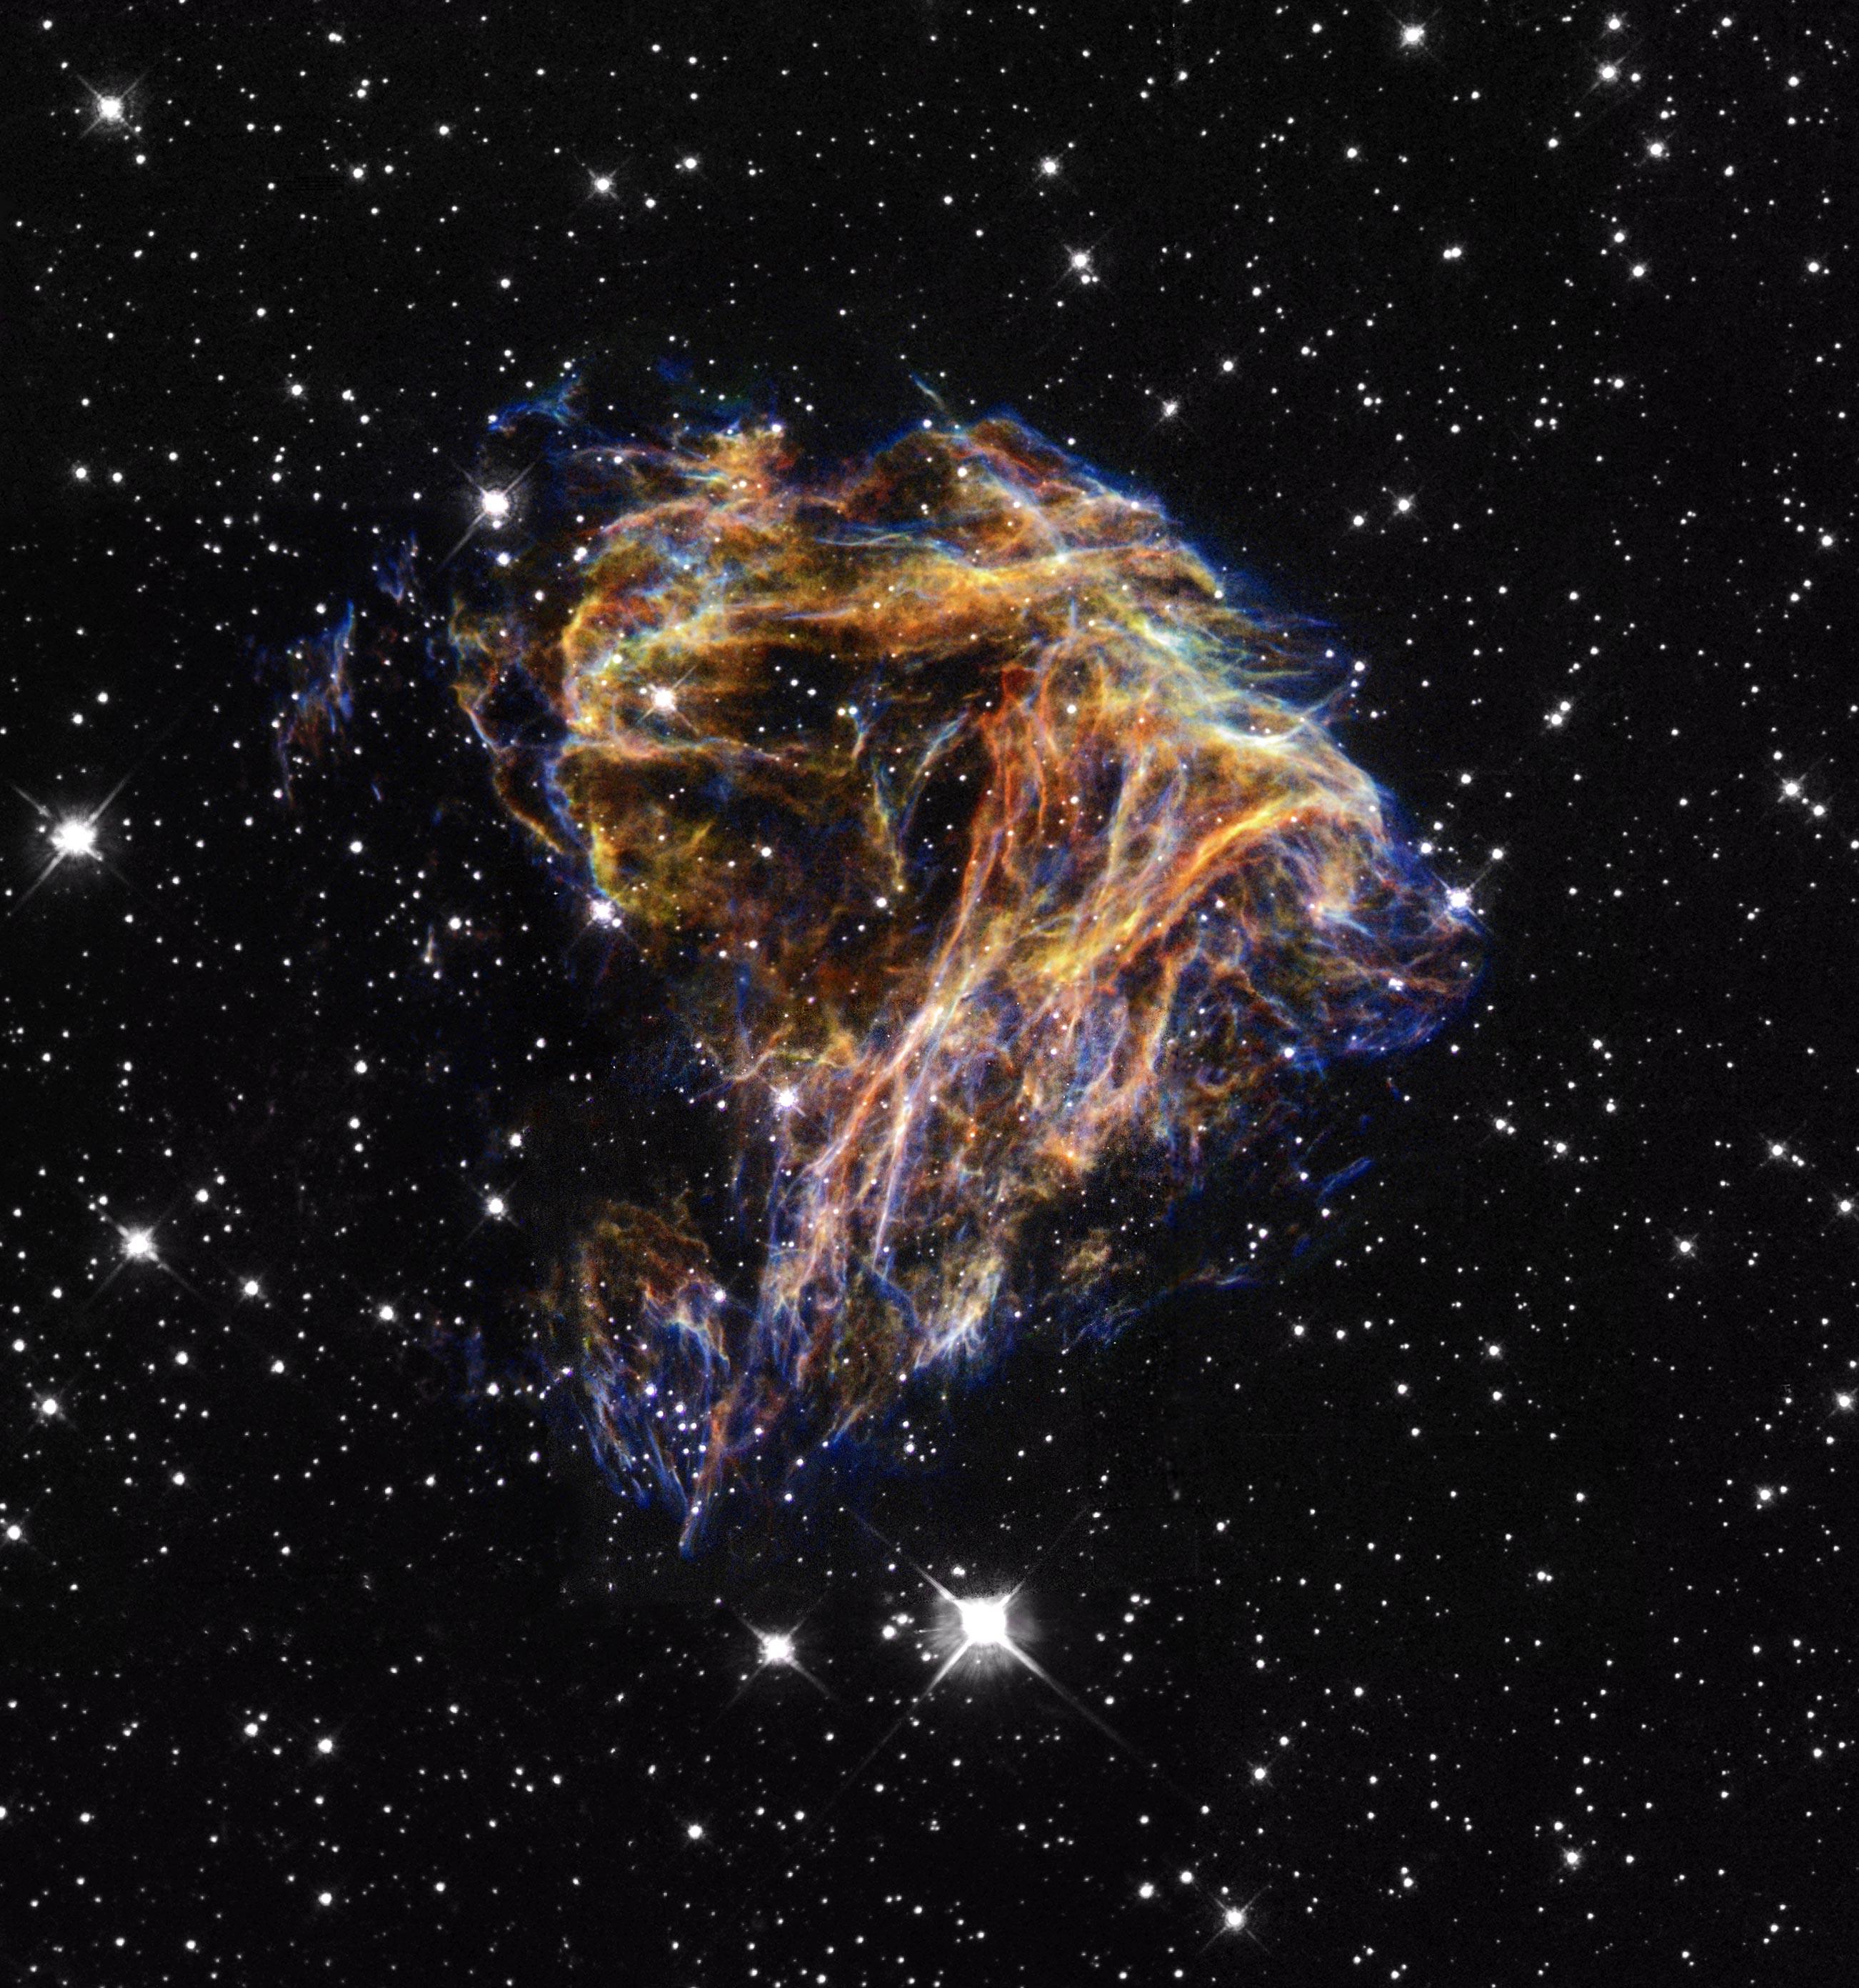 hubble images high resolution no filter - photo #6